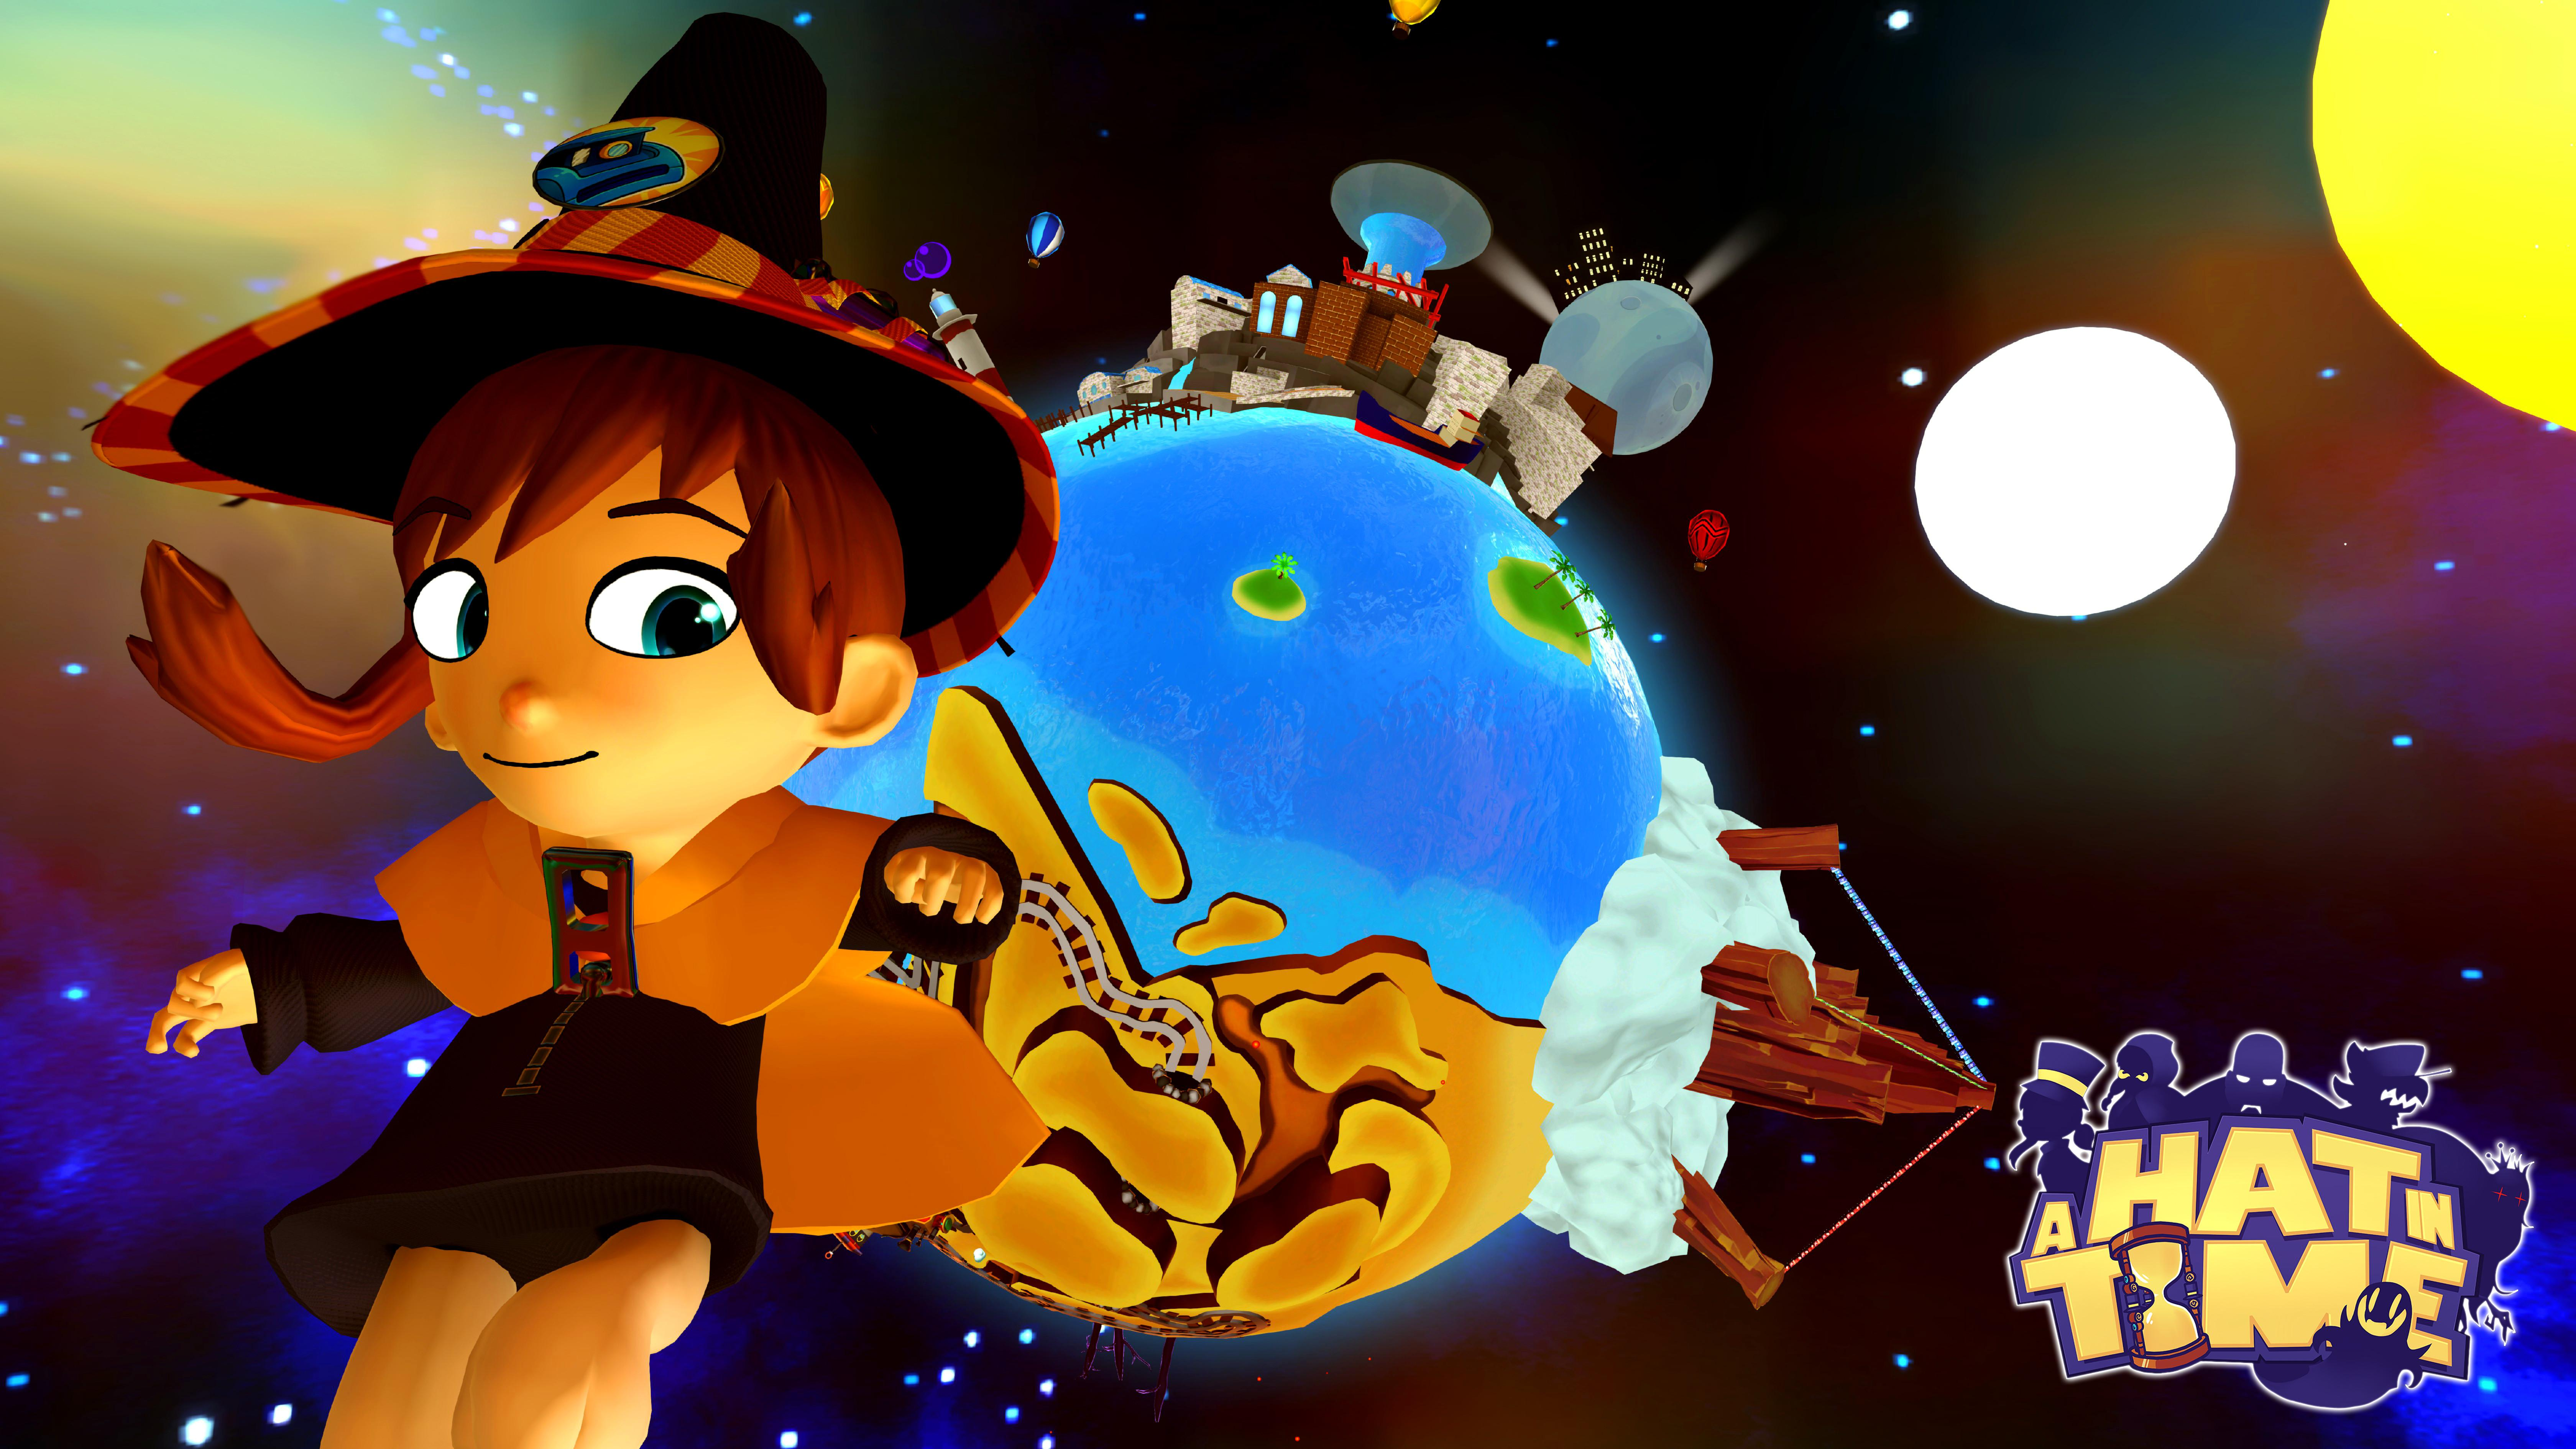 I made this wallpapers for A Hat in Time. I've fallen totally in